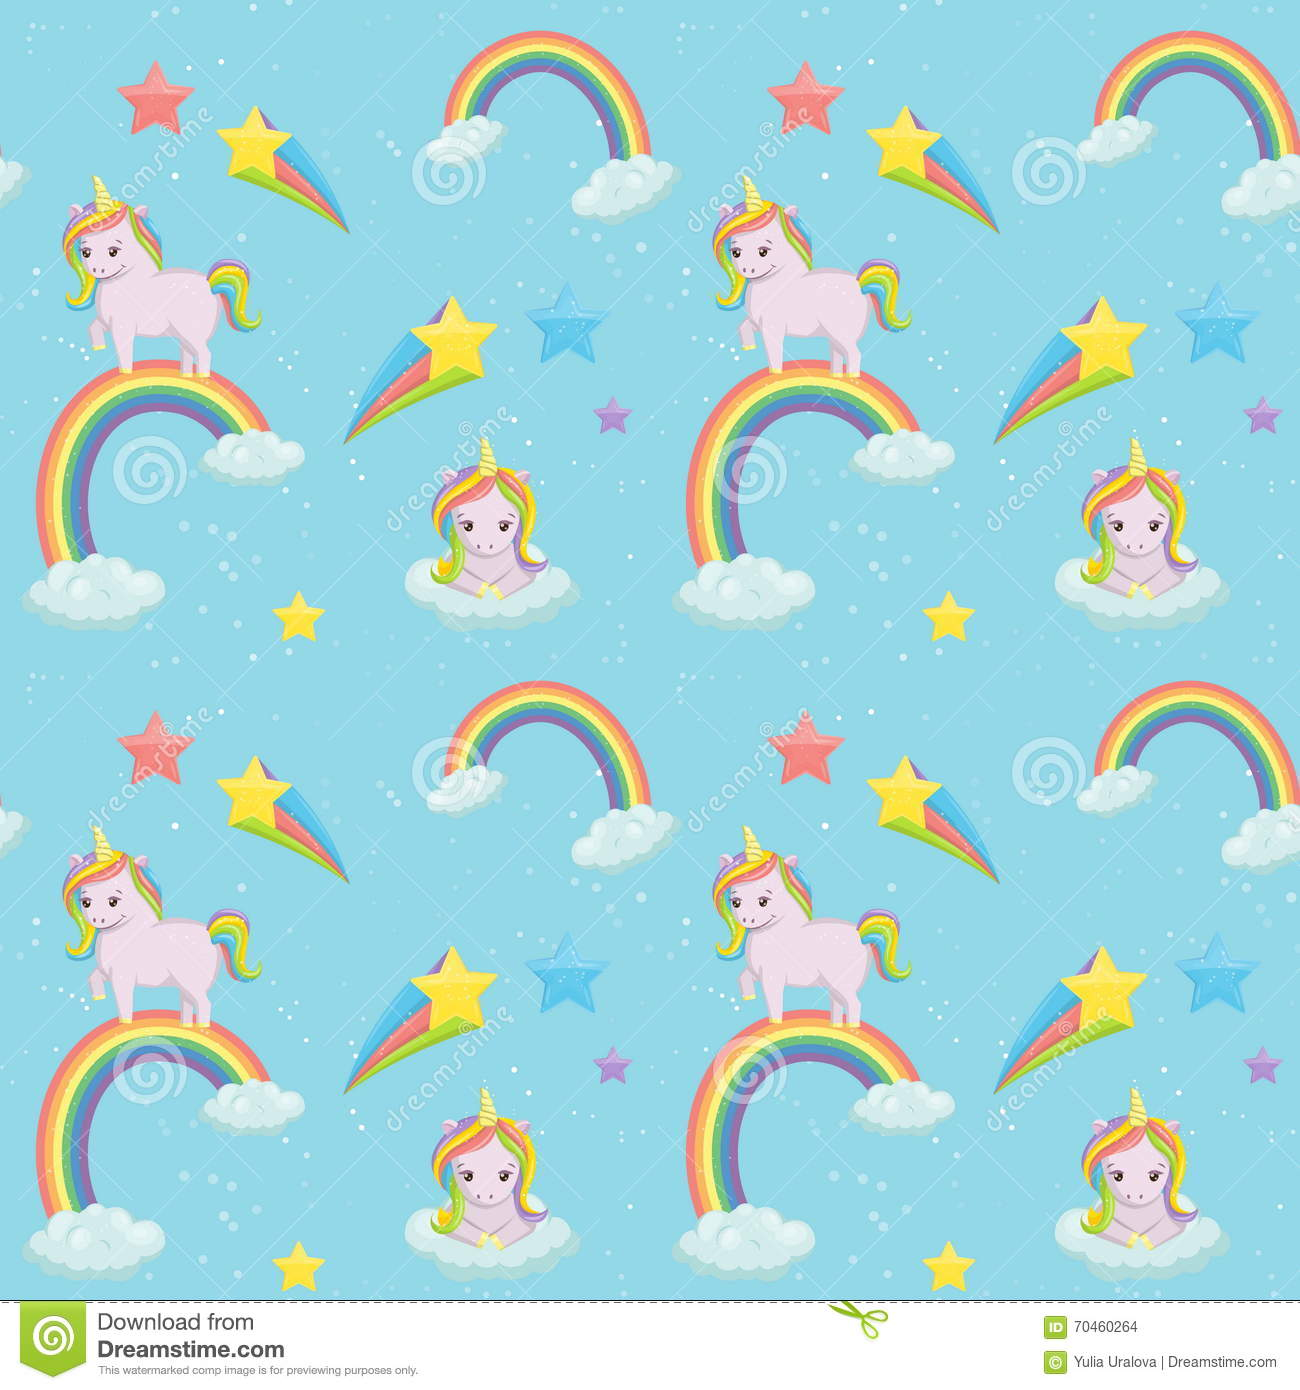 Unicorn Themed Seamless Vector Pattern. Stock Vector